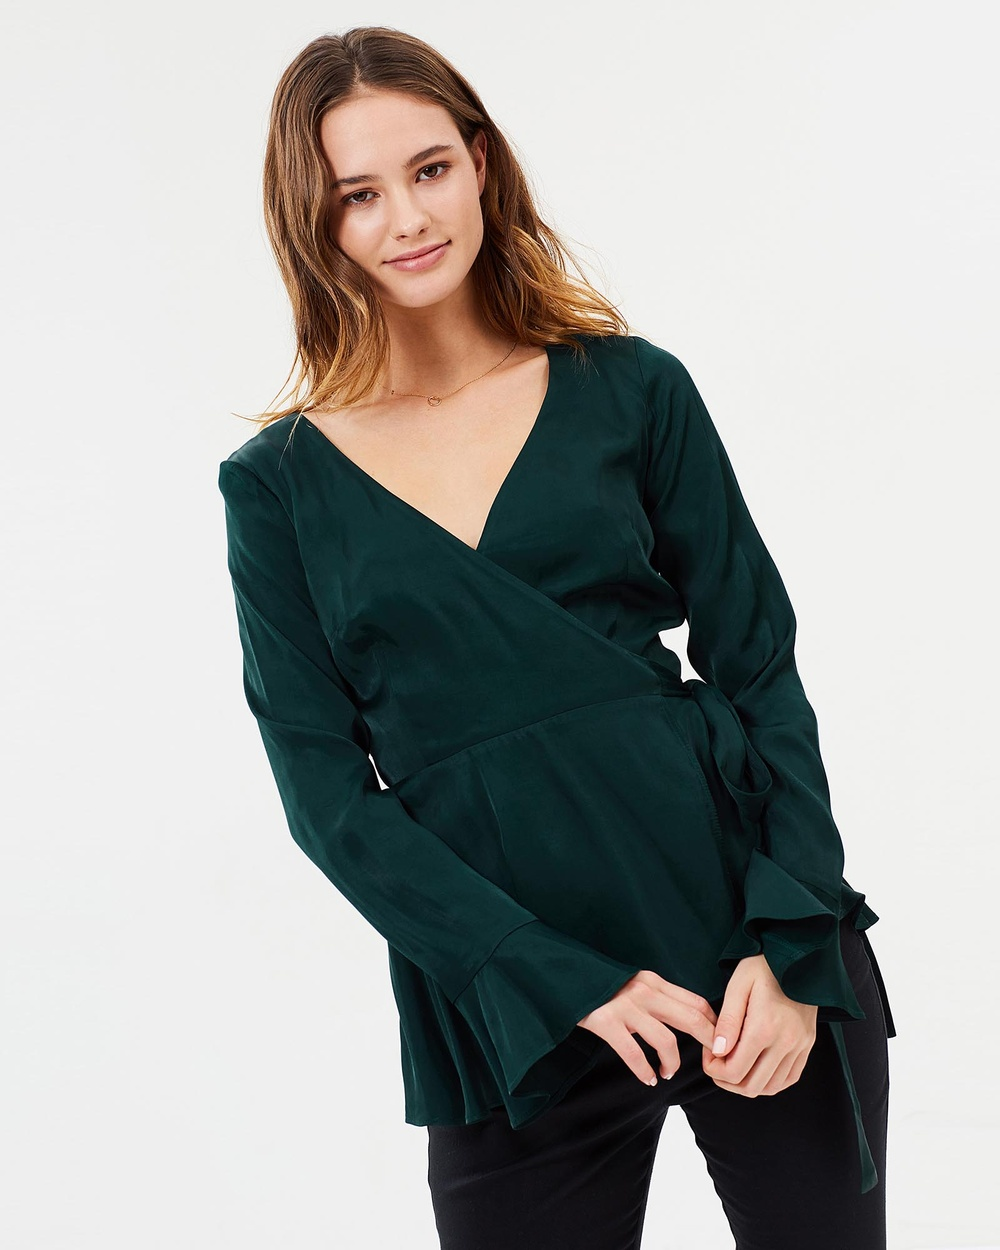 Jillian Boustred Arrabella Wrap Top Tops Emerald Green Arrabella Wrap Top